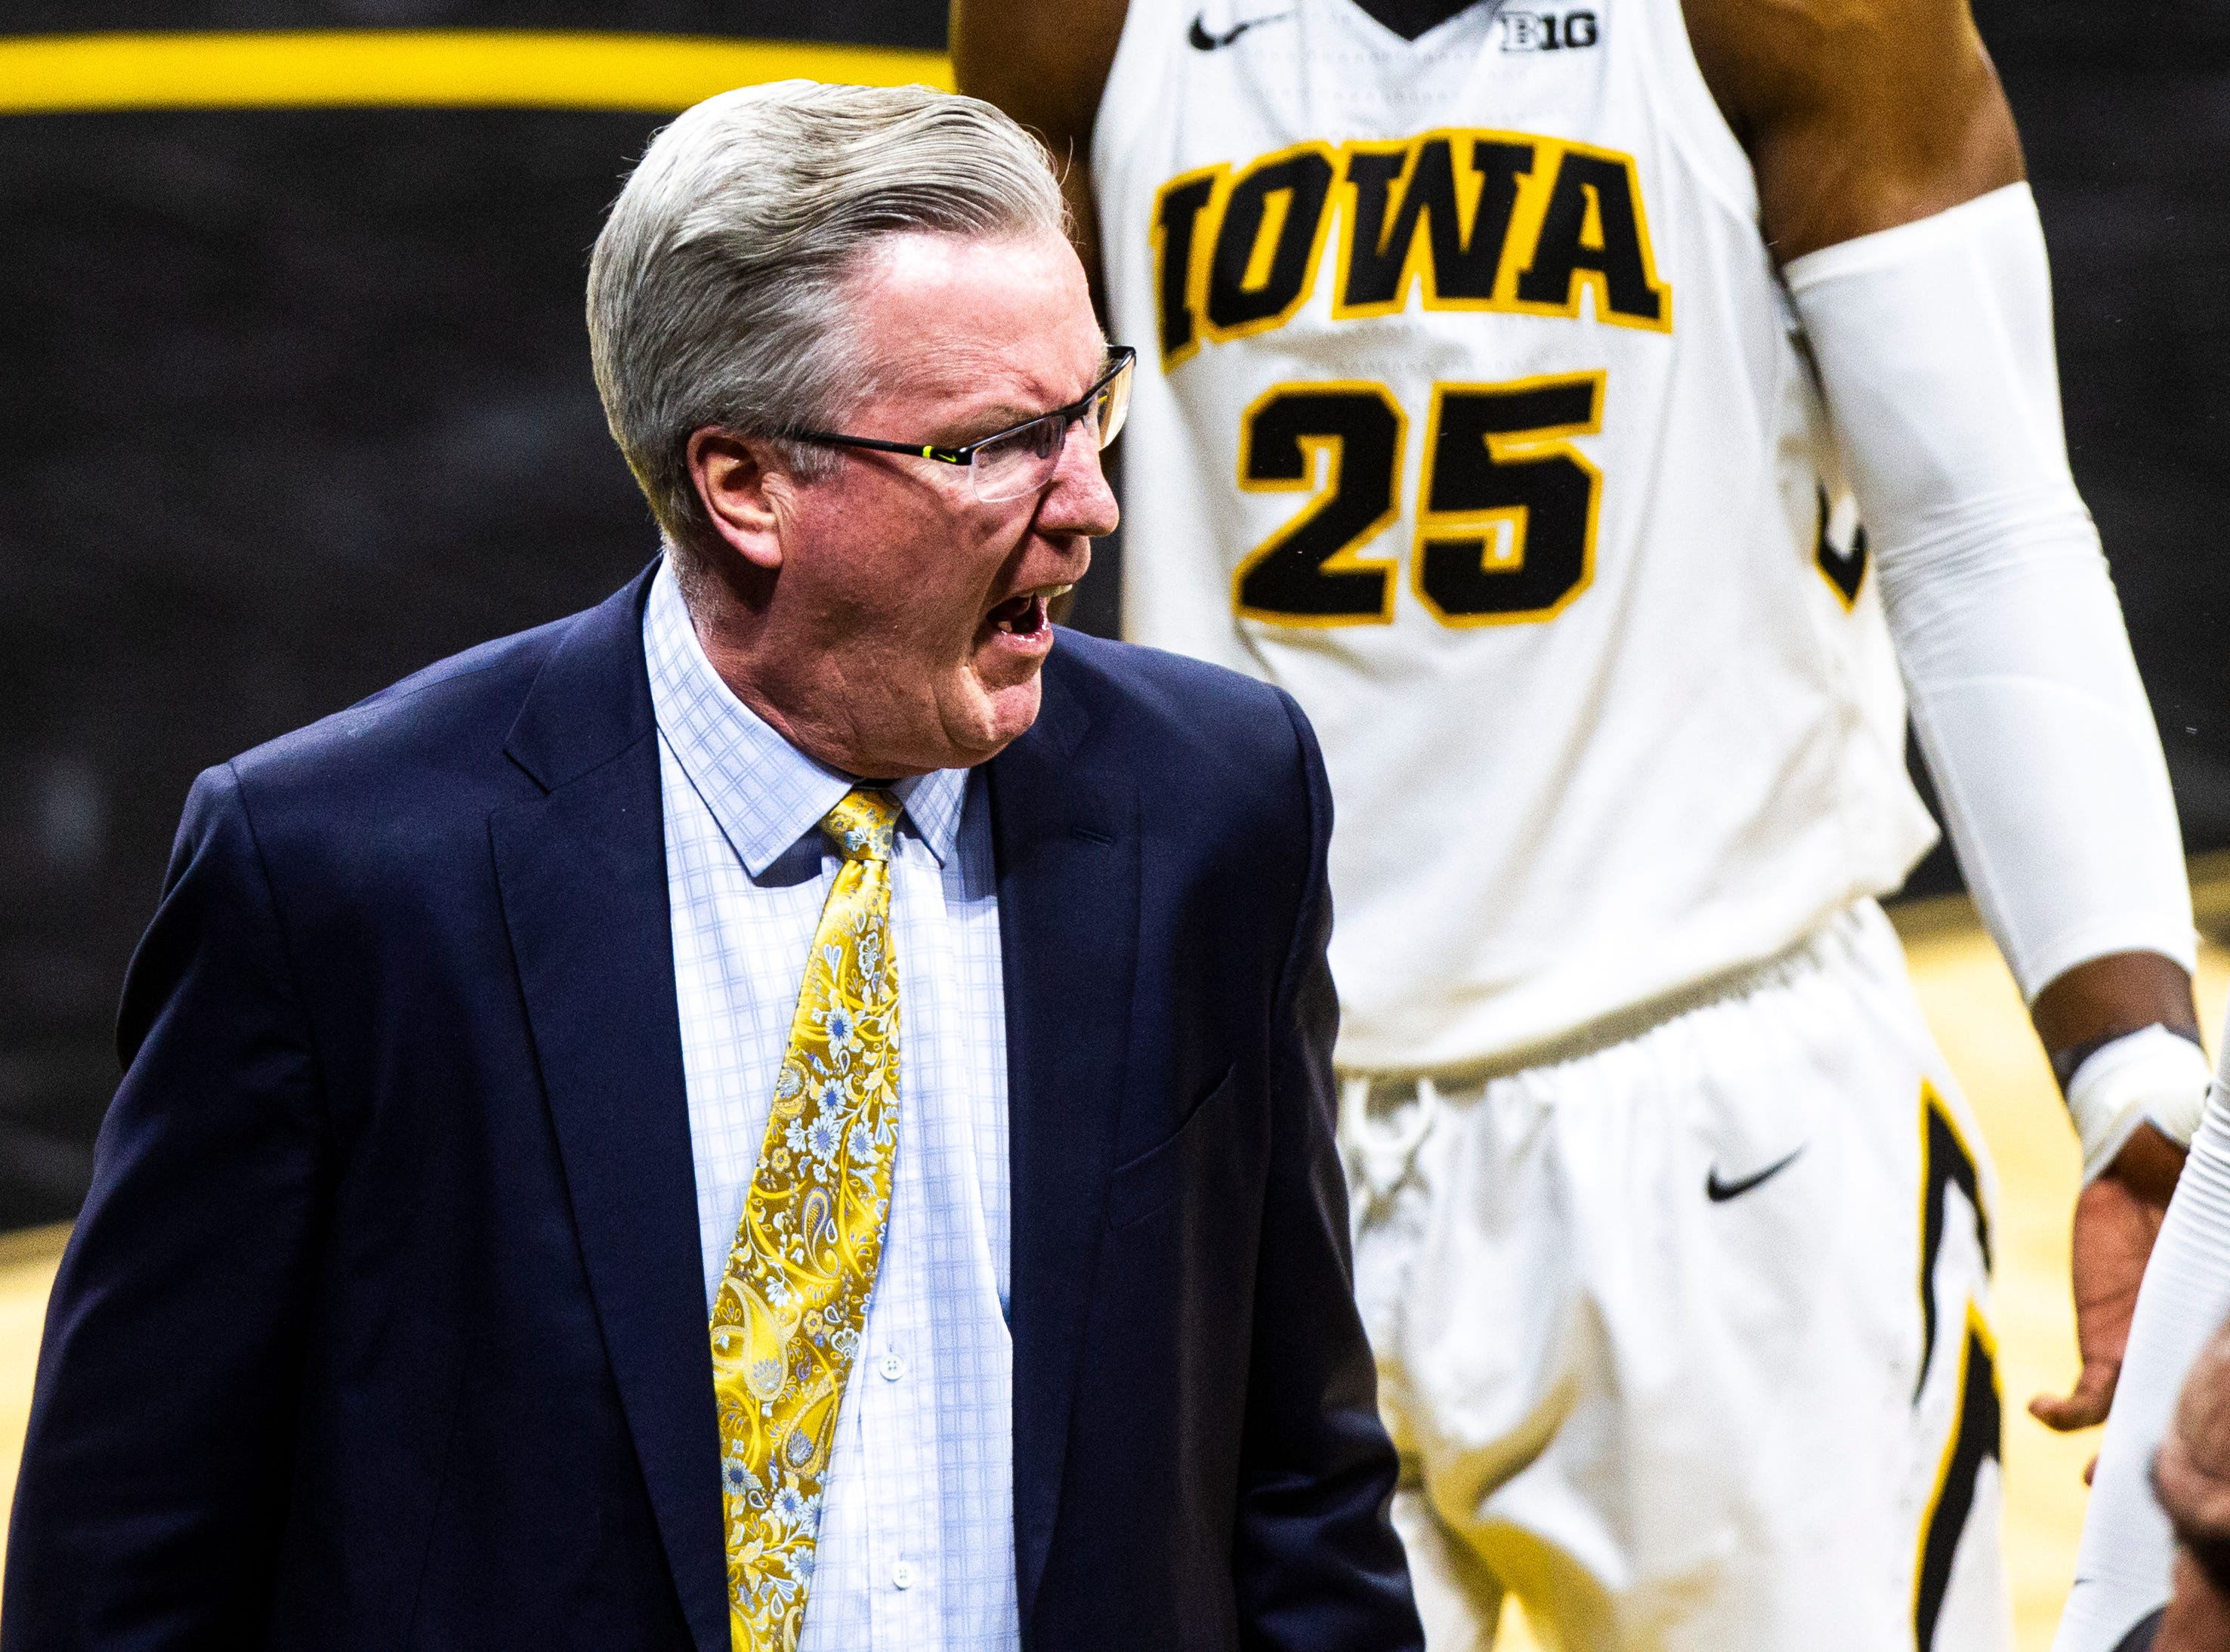 Iowa men's basketball head coach Fran McCaffery yells while heading into halftime during a NCAA men's basketball game on Saturday, Dec. 29, 2018, at Carver-Hawkeye Arena in Iowa City.